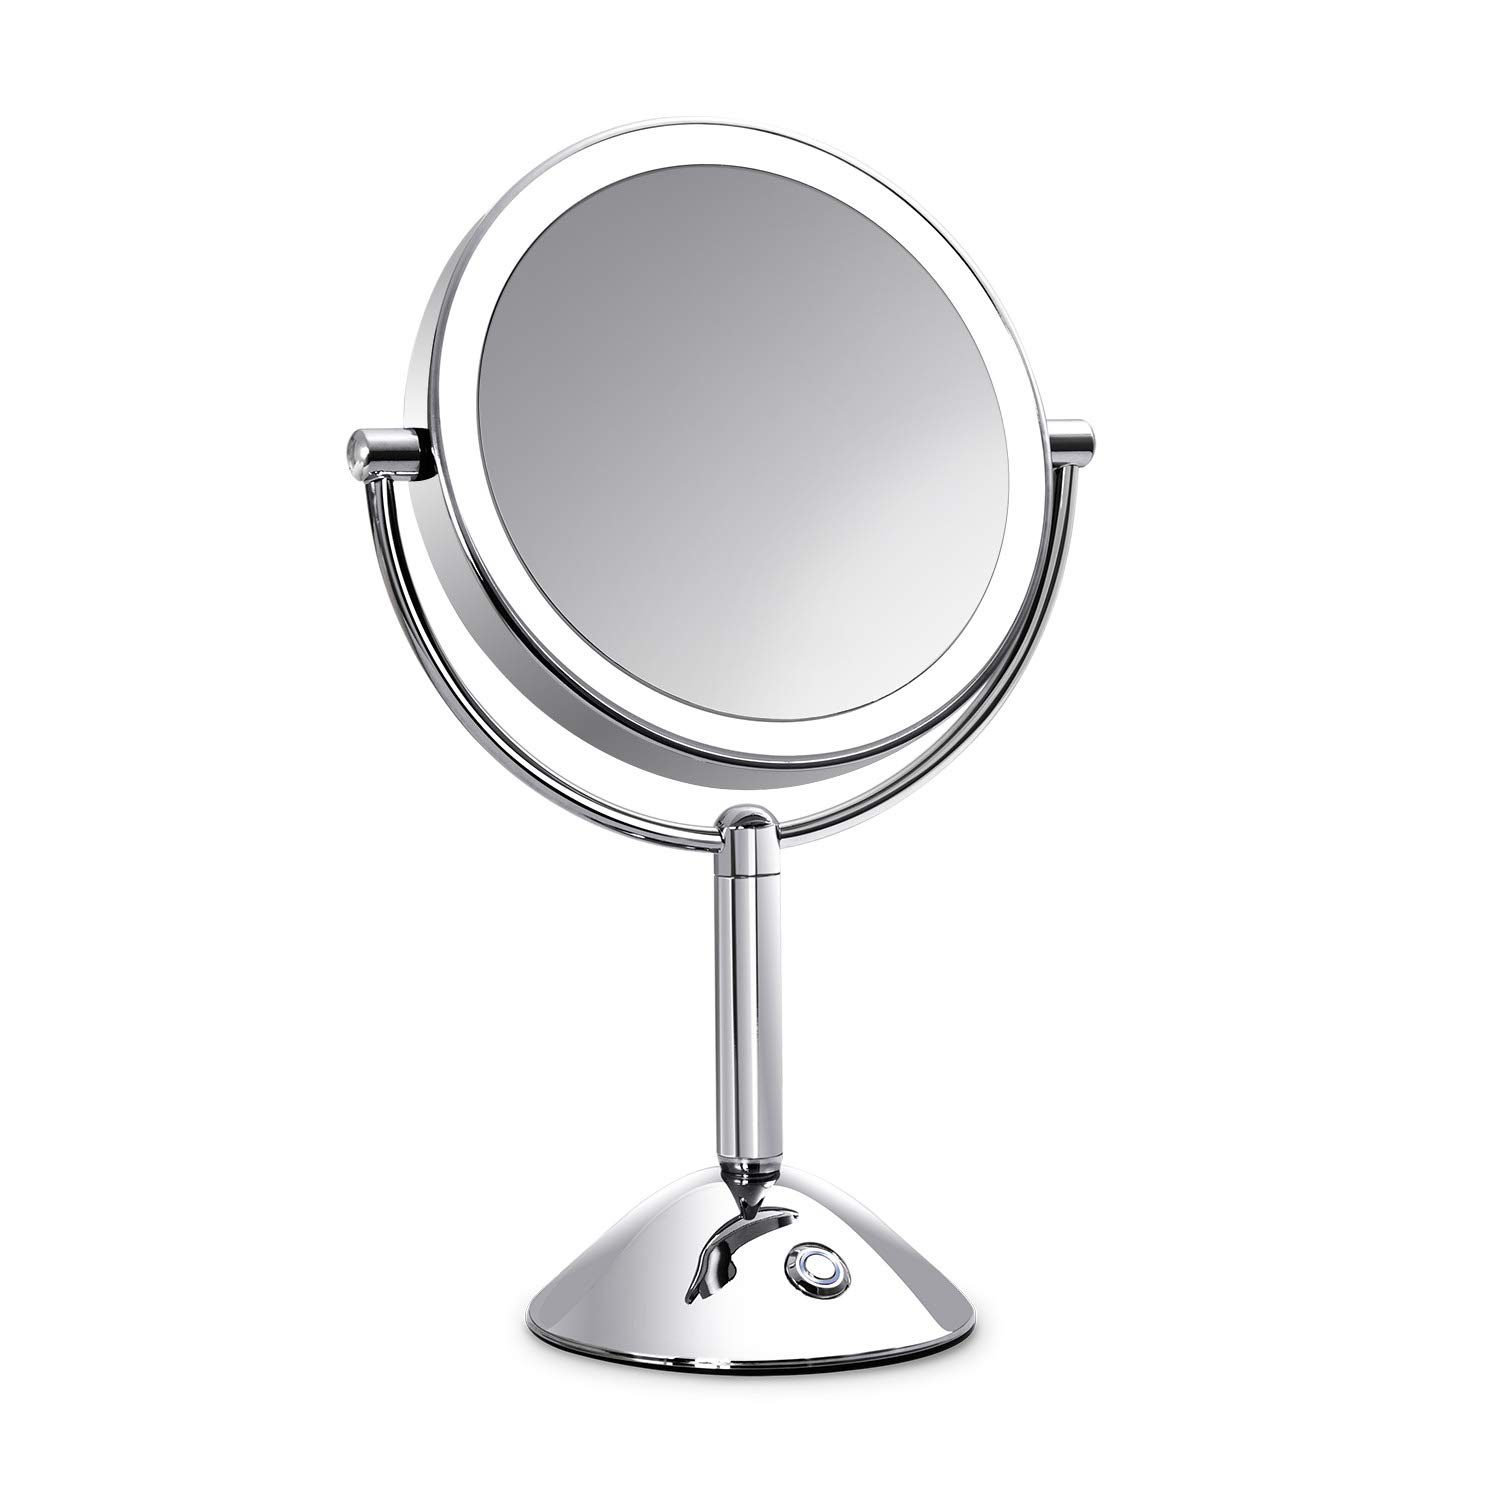 Makeup Mirror with Lights Lighted Makeup Mirror LED Vanity Mirror 7X Magnifying Magnified Double Sided Makeup Mirror Adjustable Cool White Light Mirror Large Makeup Corded Cordless Mirror